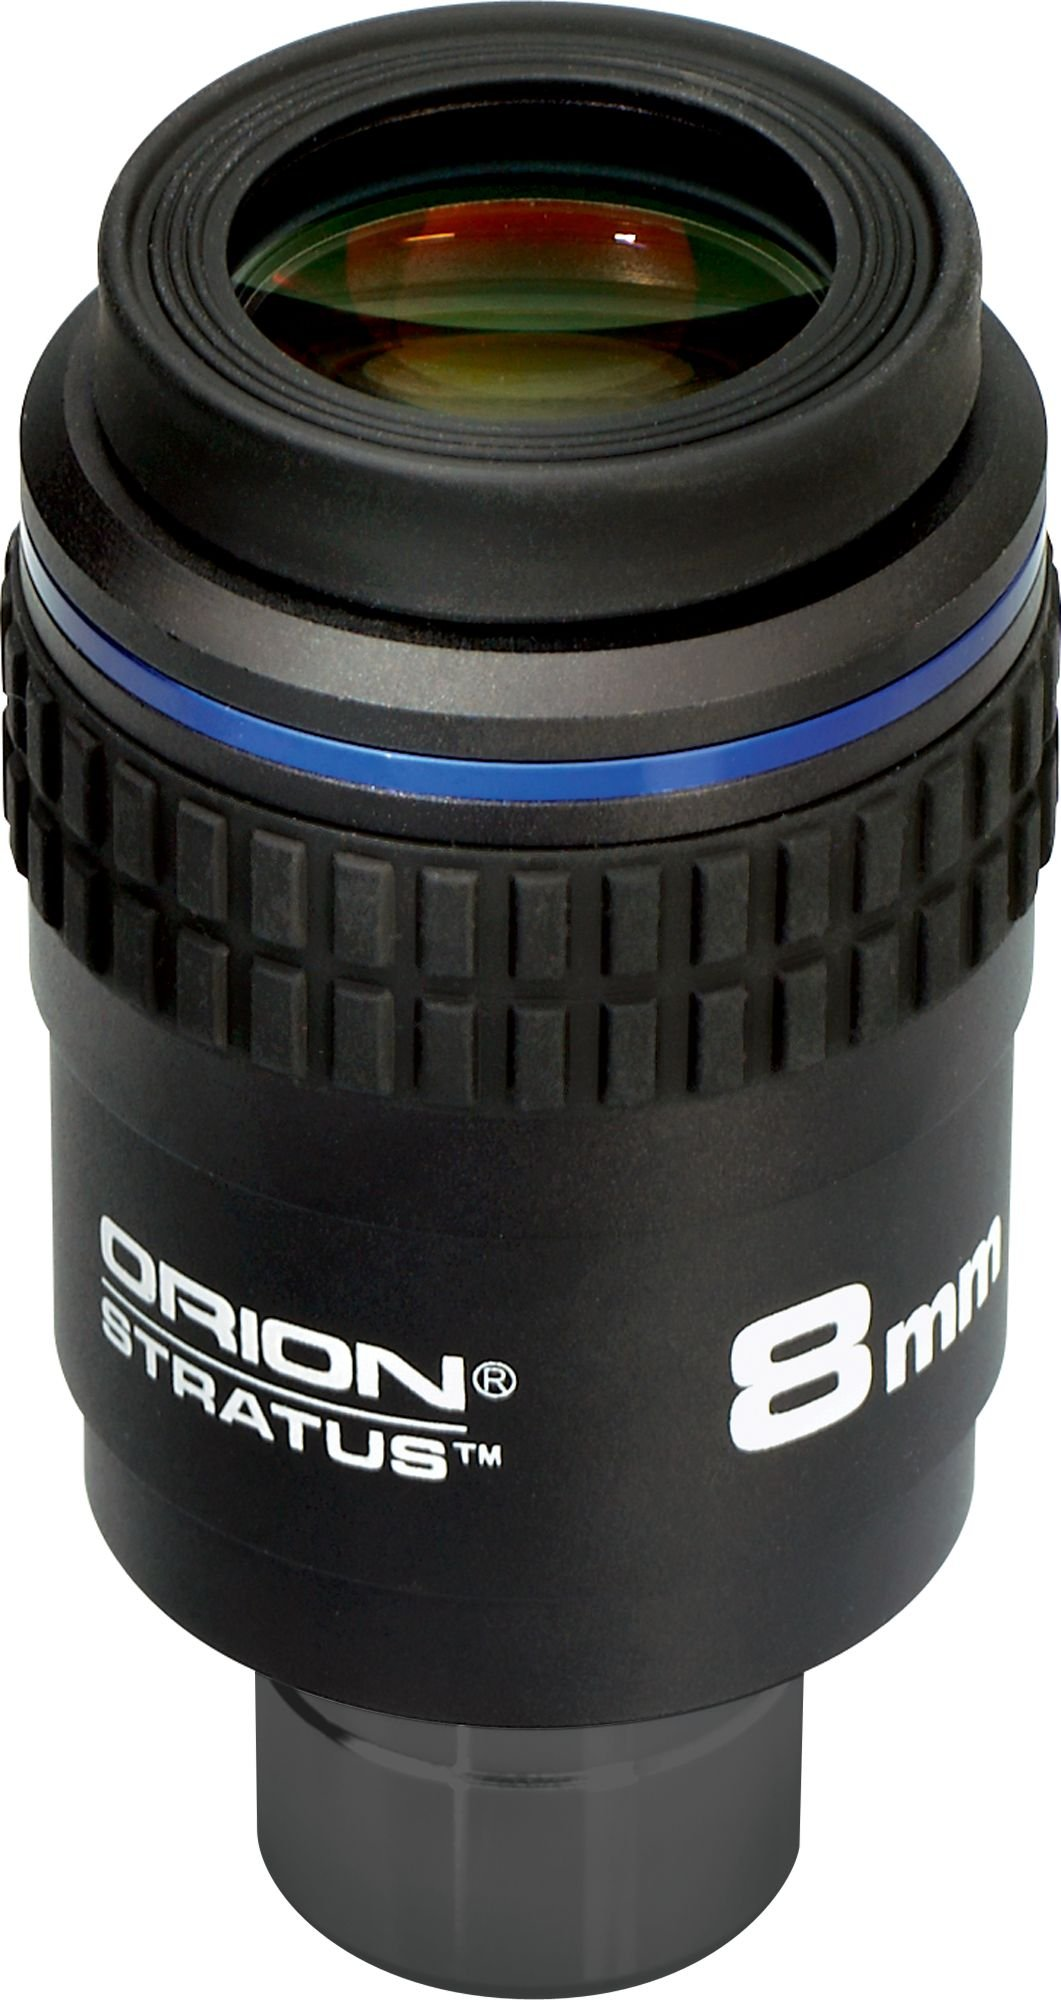 Orion 8243 8mm Stratus Wide-Field Eyepiece by Orion